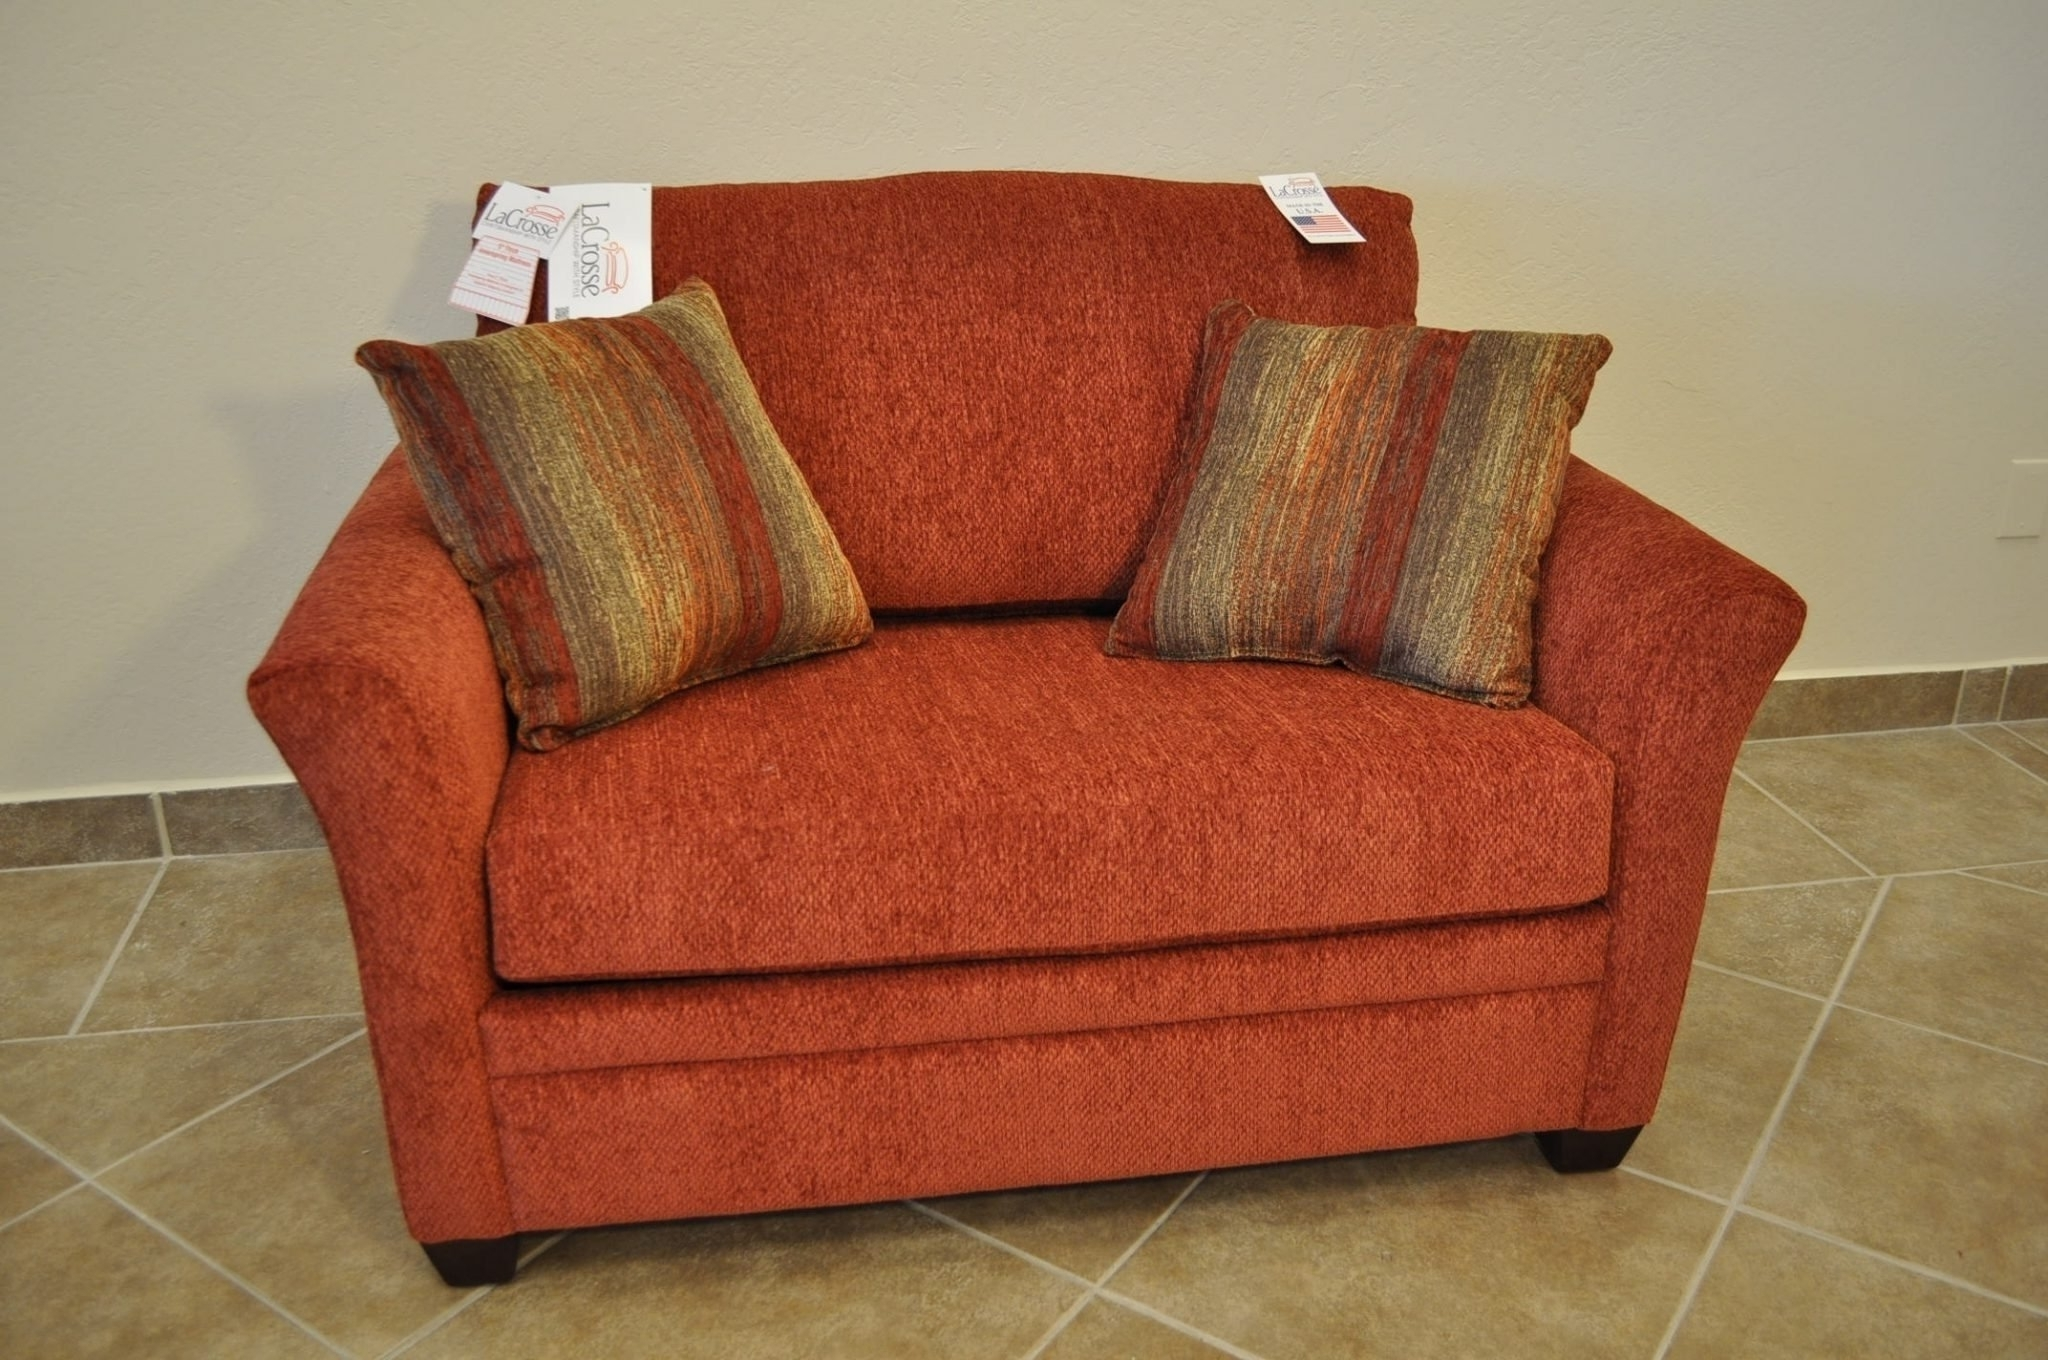 Furniture Fancy Sleeper Sofa Ikea For Your Best Living Room In Within Latest Ikea Loveseat Sleeper Sofas (View 9 of 20)